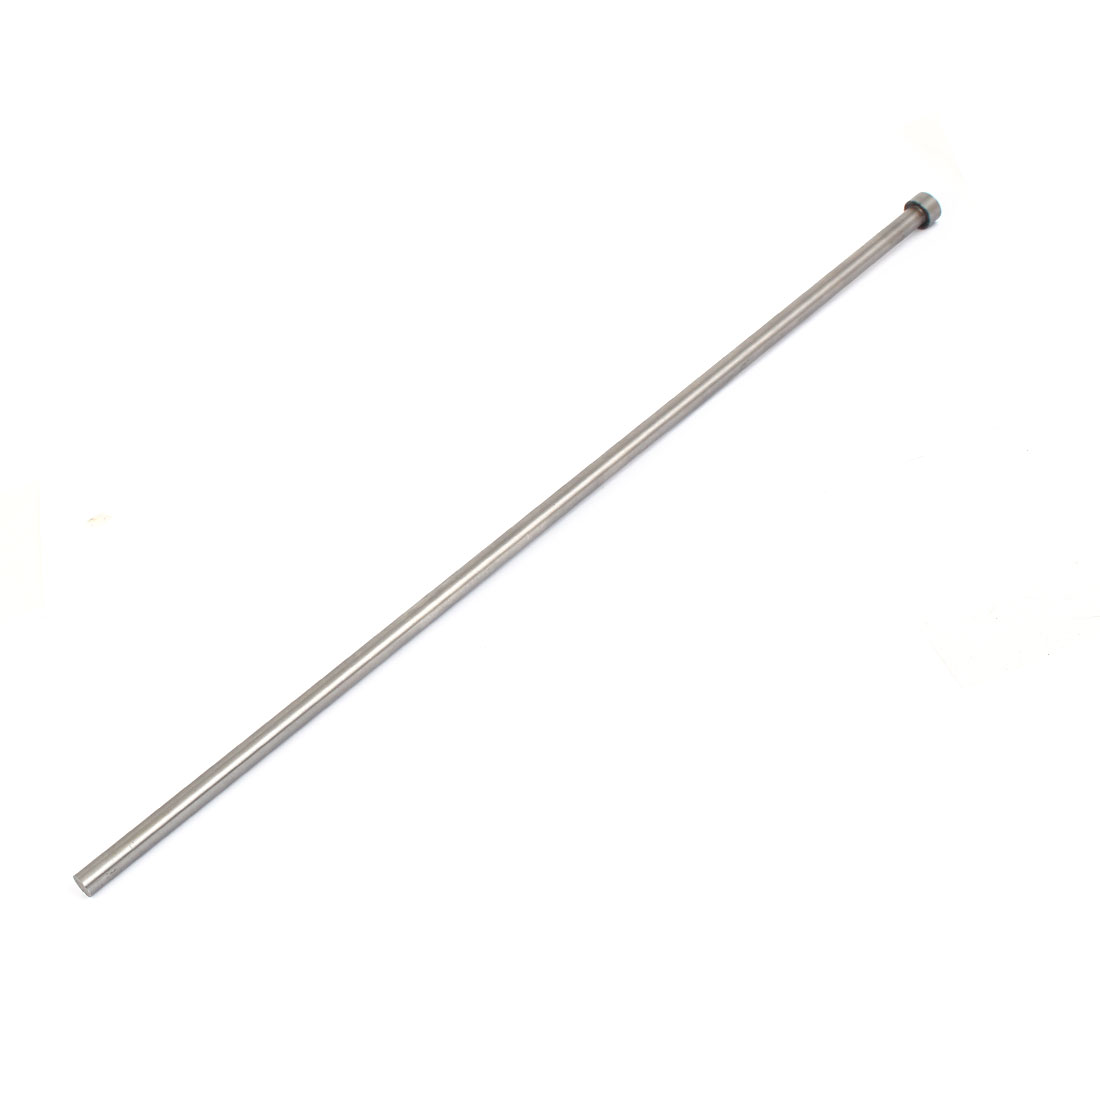 9mm Diameter Round Tip Steel Straight Ejector Pin Punch 450mm Long Silver Gray